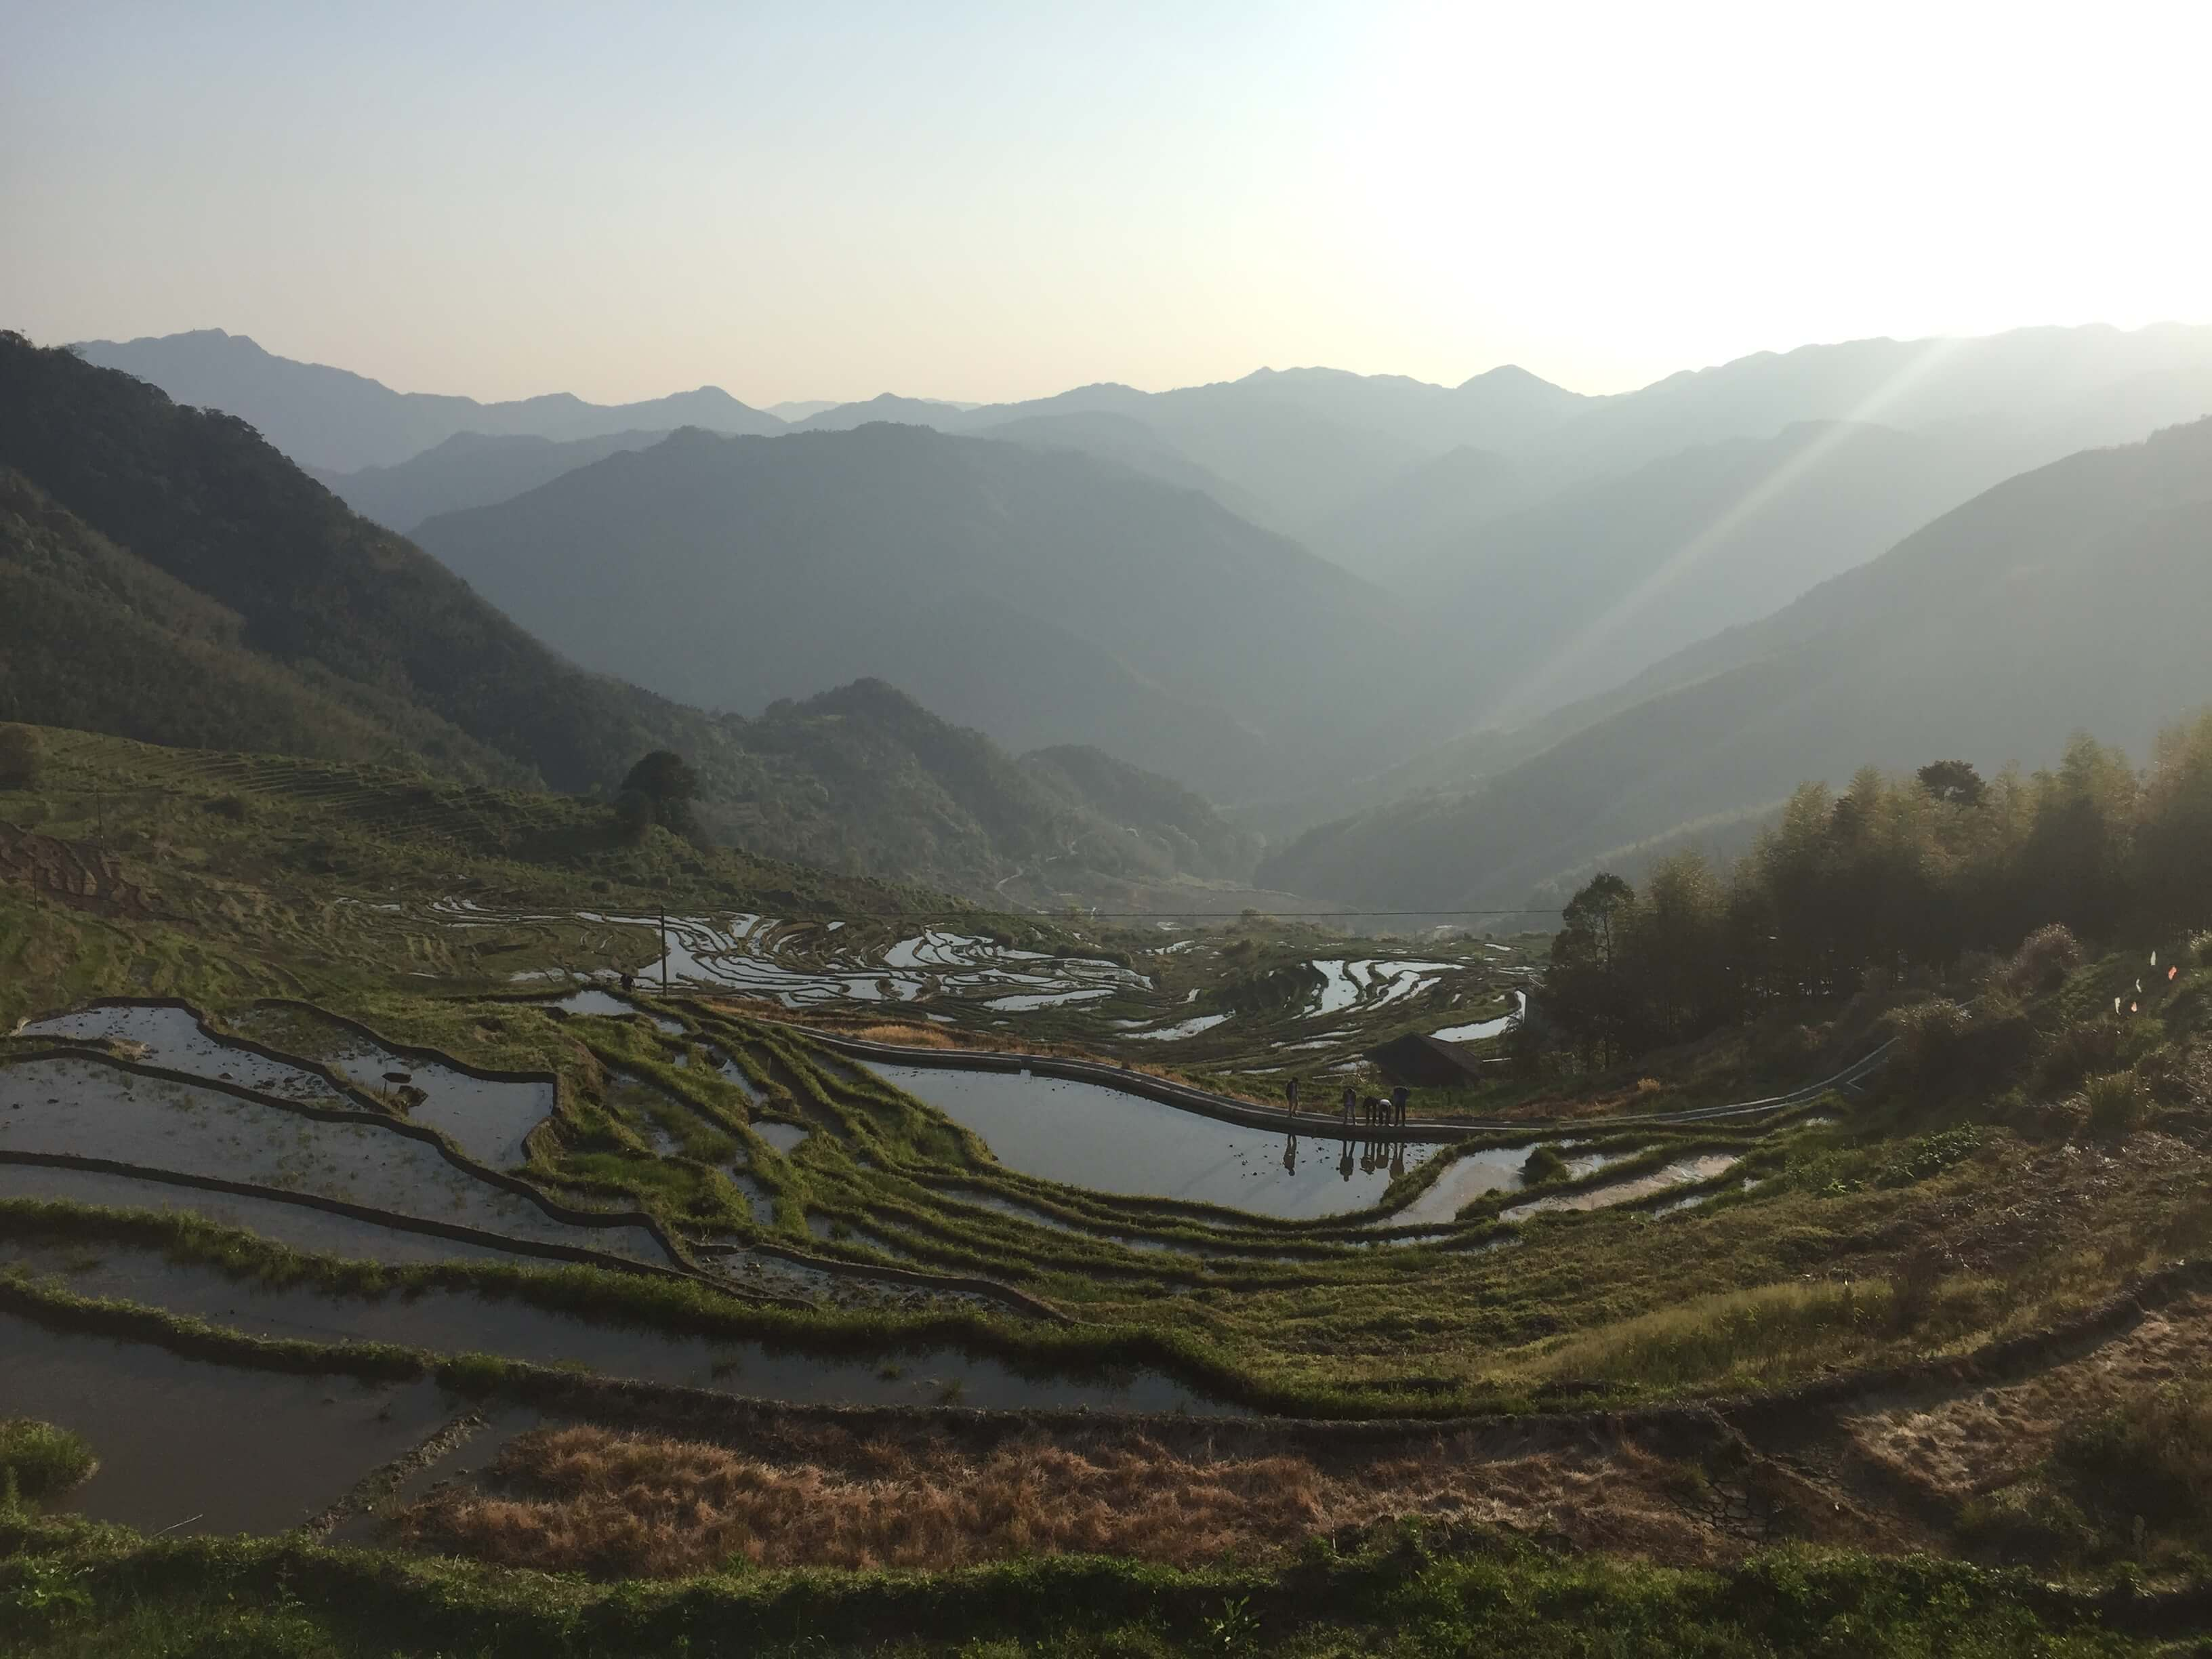 rice terraces in fujian province china